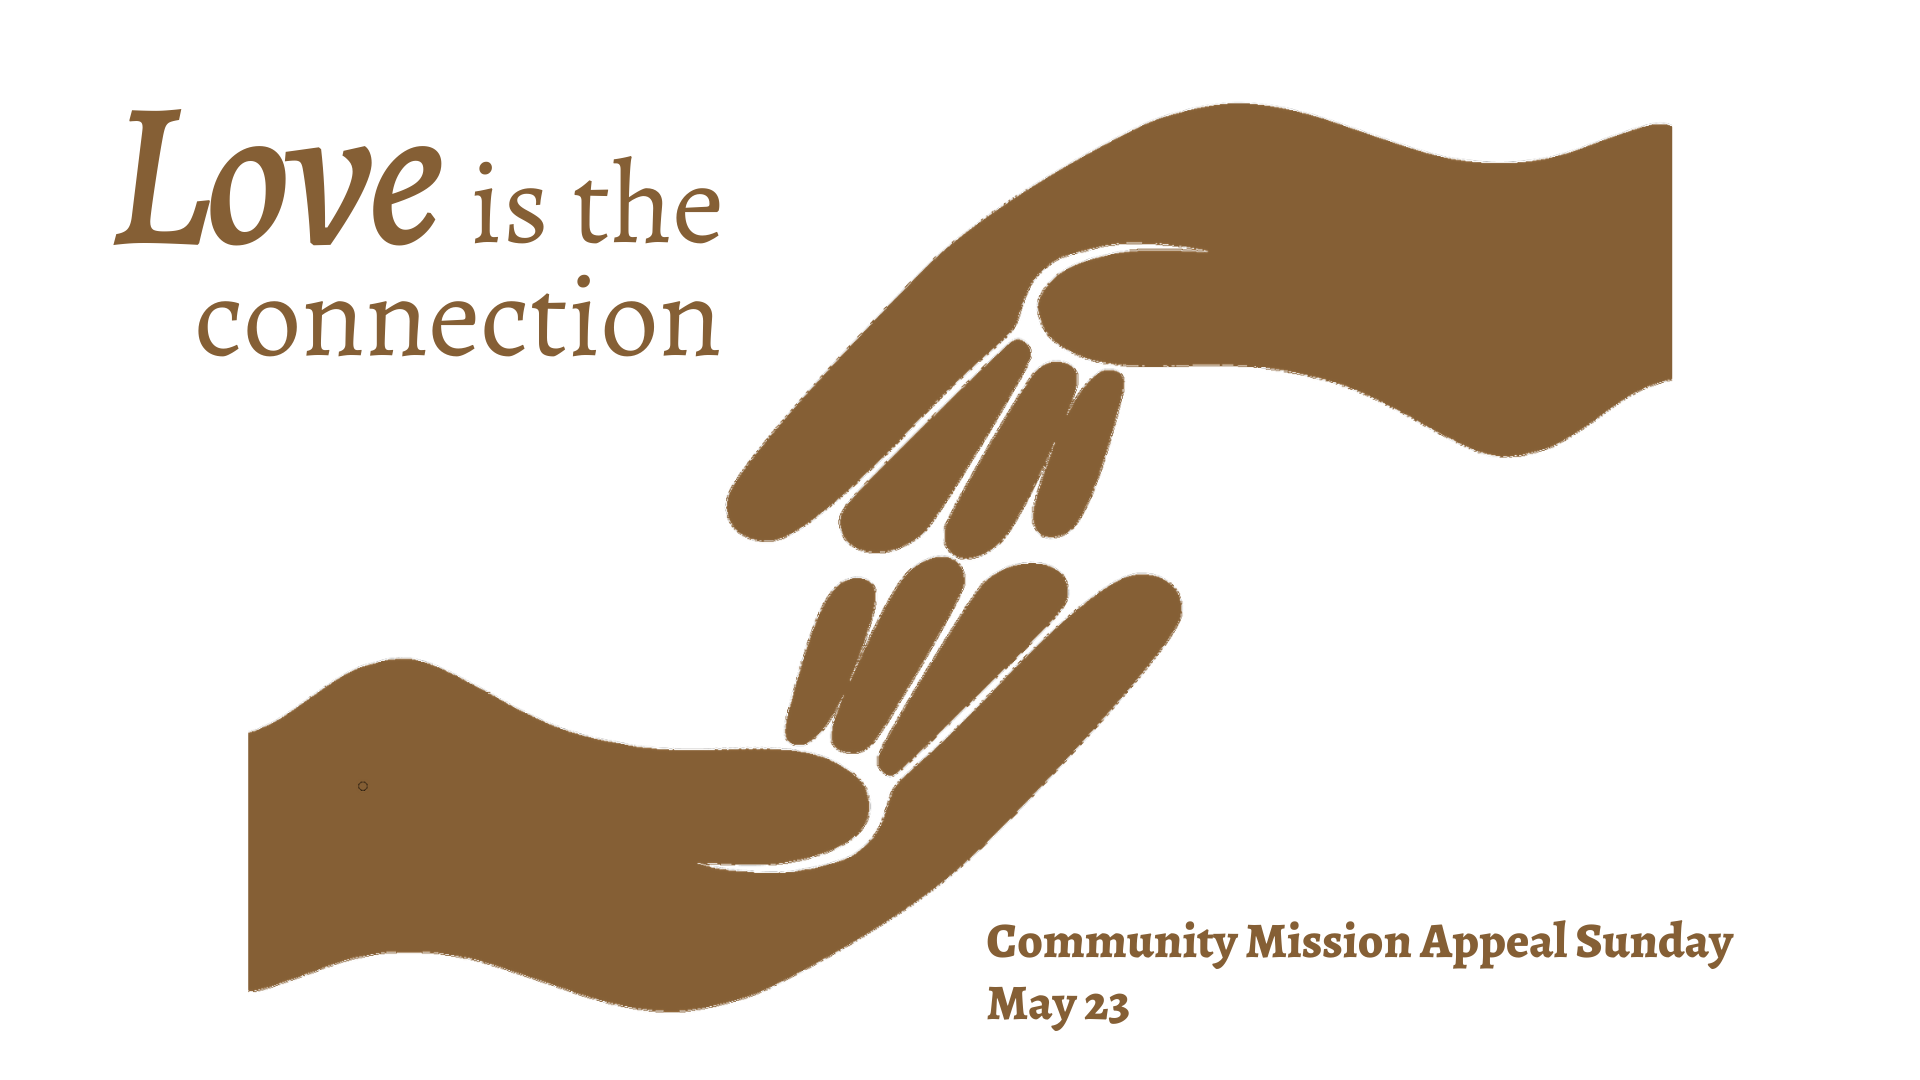 Community Mission Appeal Sunday is May 23